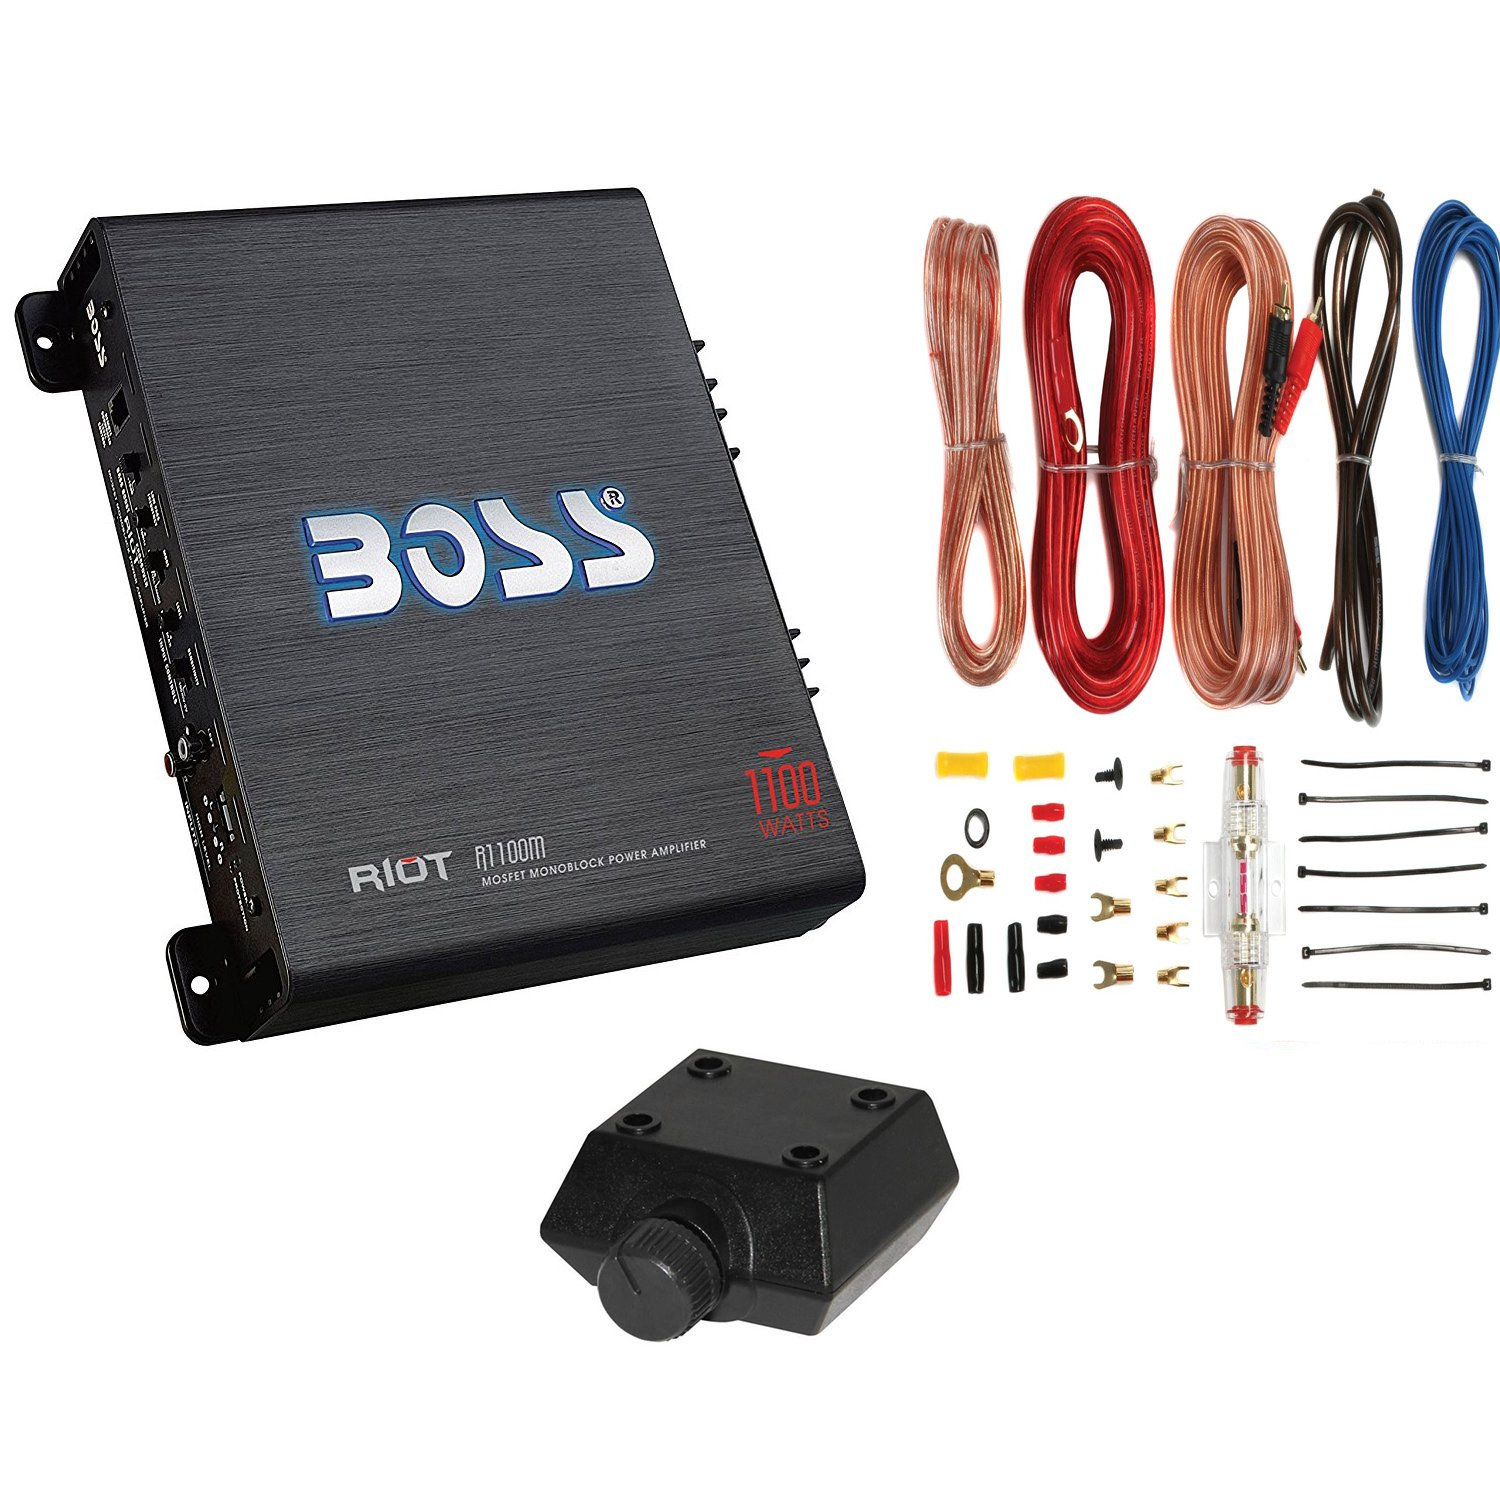 Boss R1100m 1100w Mono Car Audio Amplifier Kit2 Kapasitor Bank The Punch 8 Farad Electronics